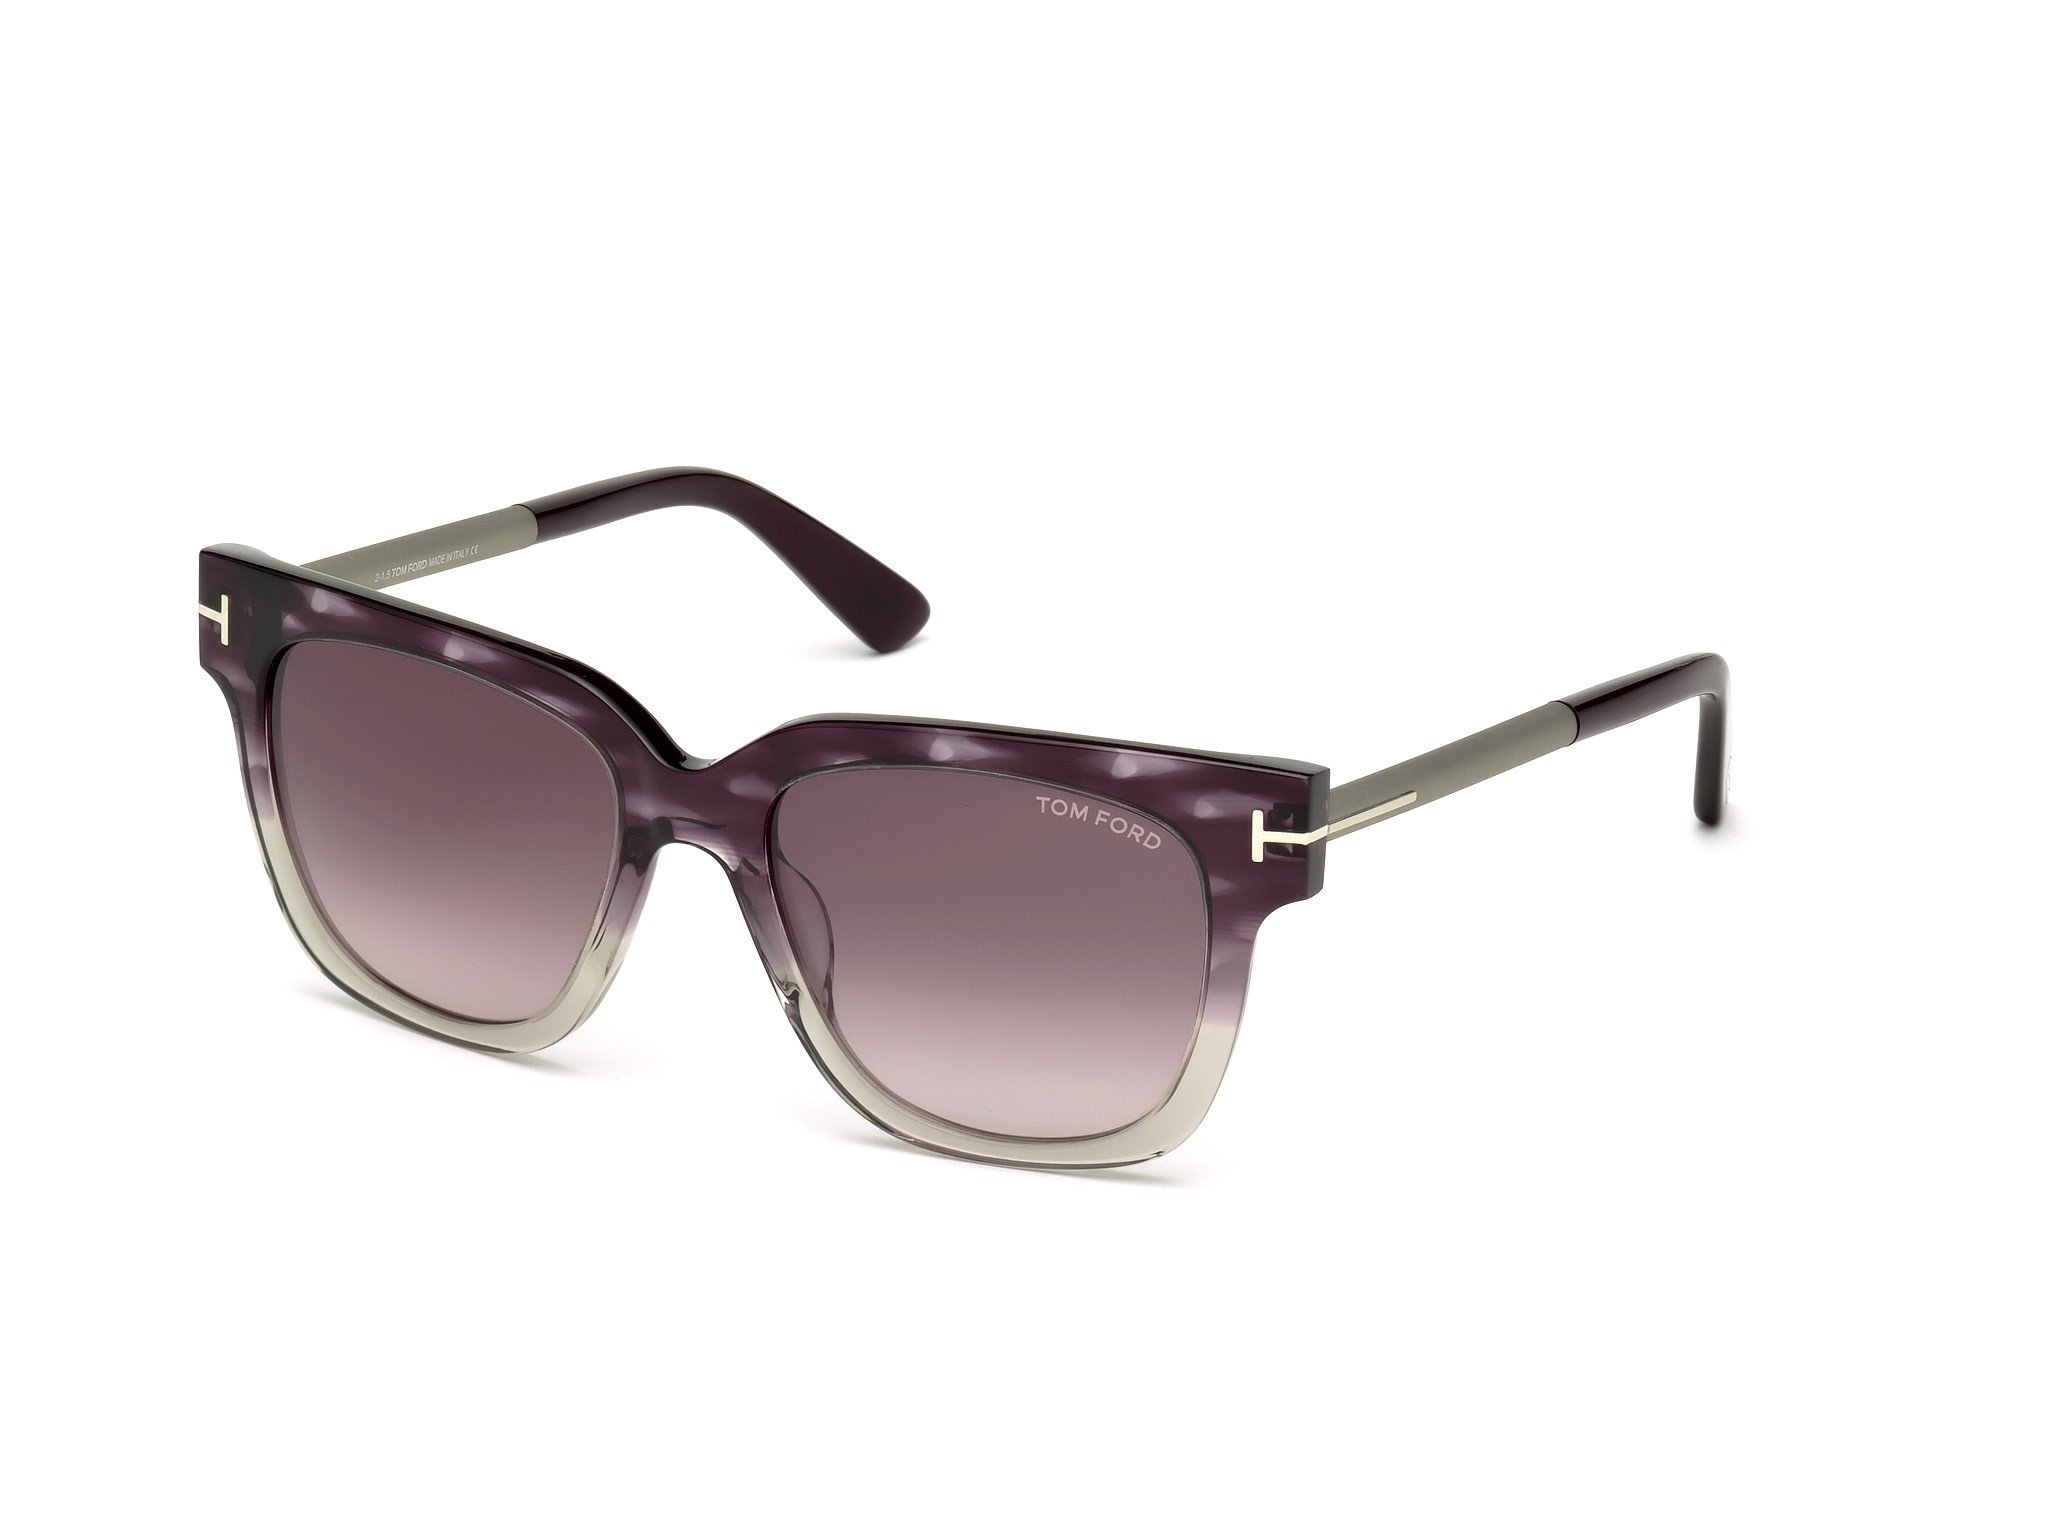 Tom Ford Sunglasses 436F TF436 TF436F Tracy 54mm-18MM-140MM Asian Fit (83T VIOLET OTHER)